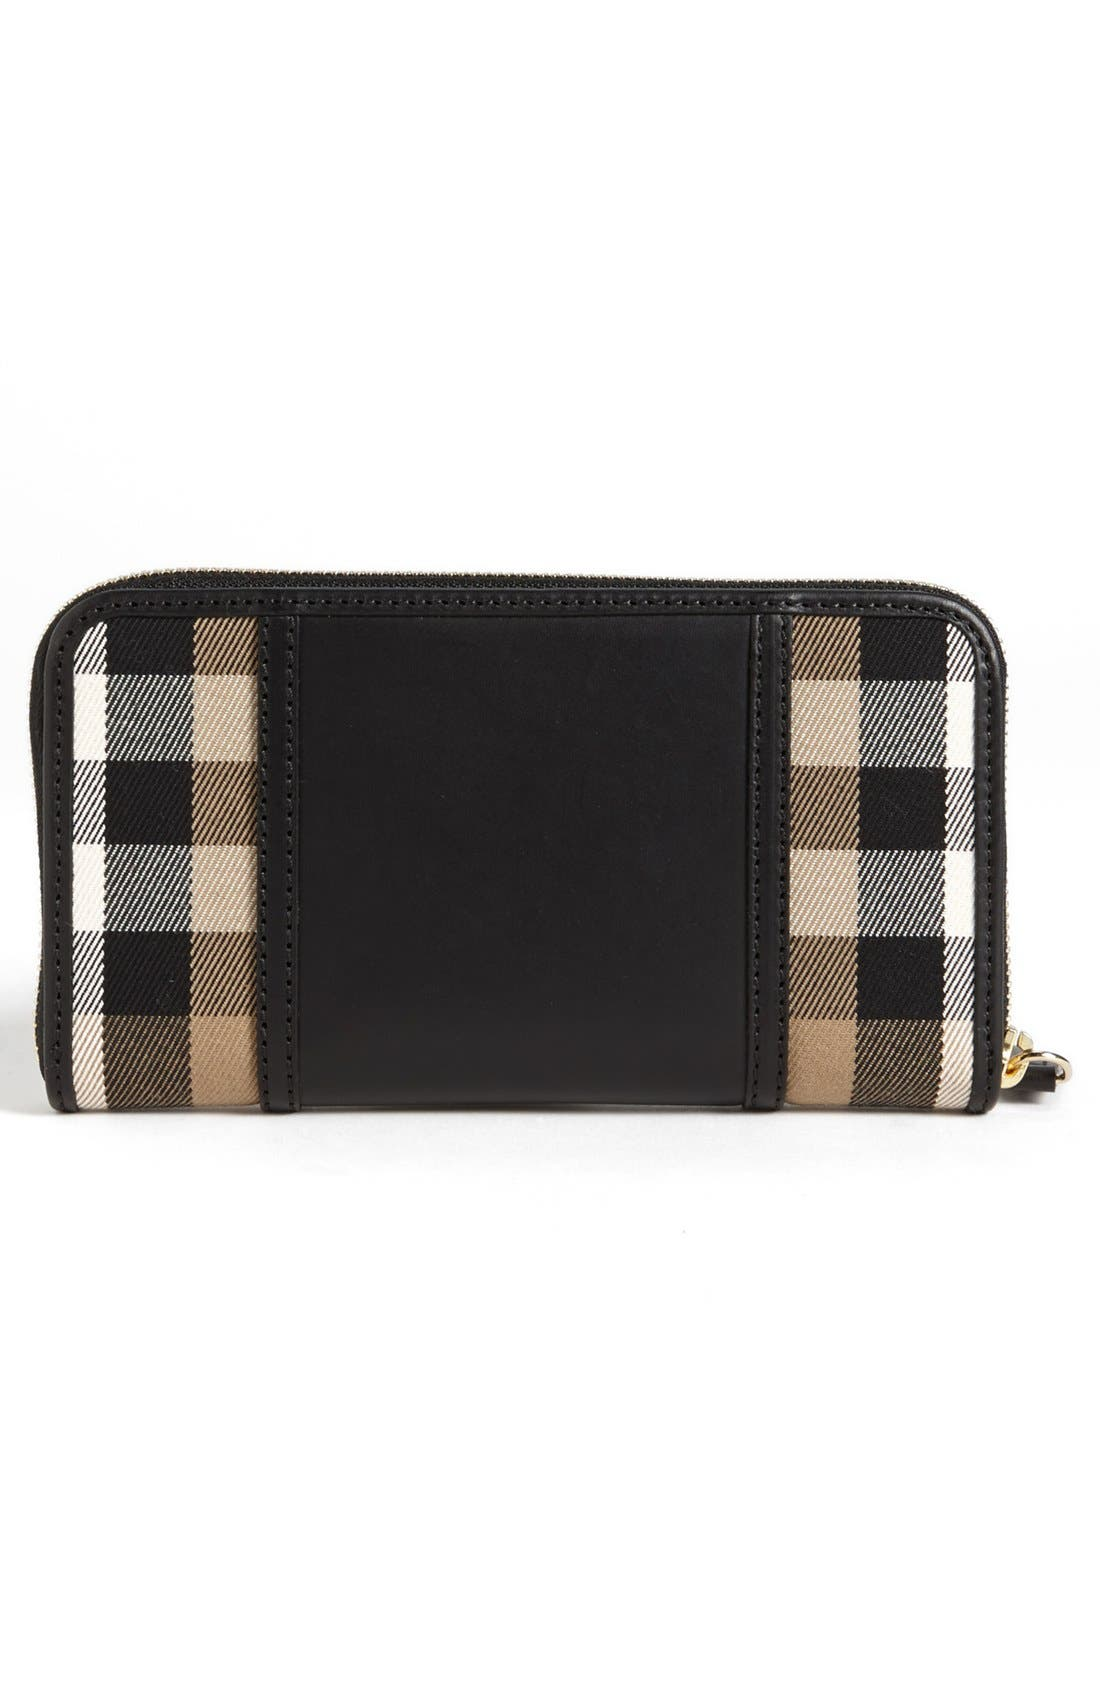 Alternate Image 3  - Burberry 'House Check - Large' Zip Around Wallet